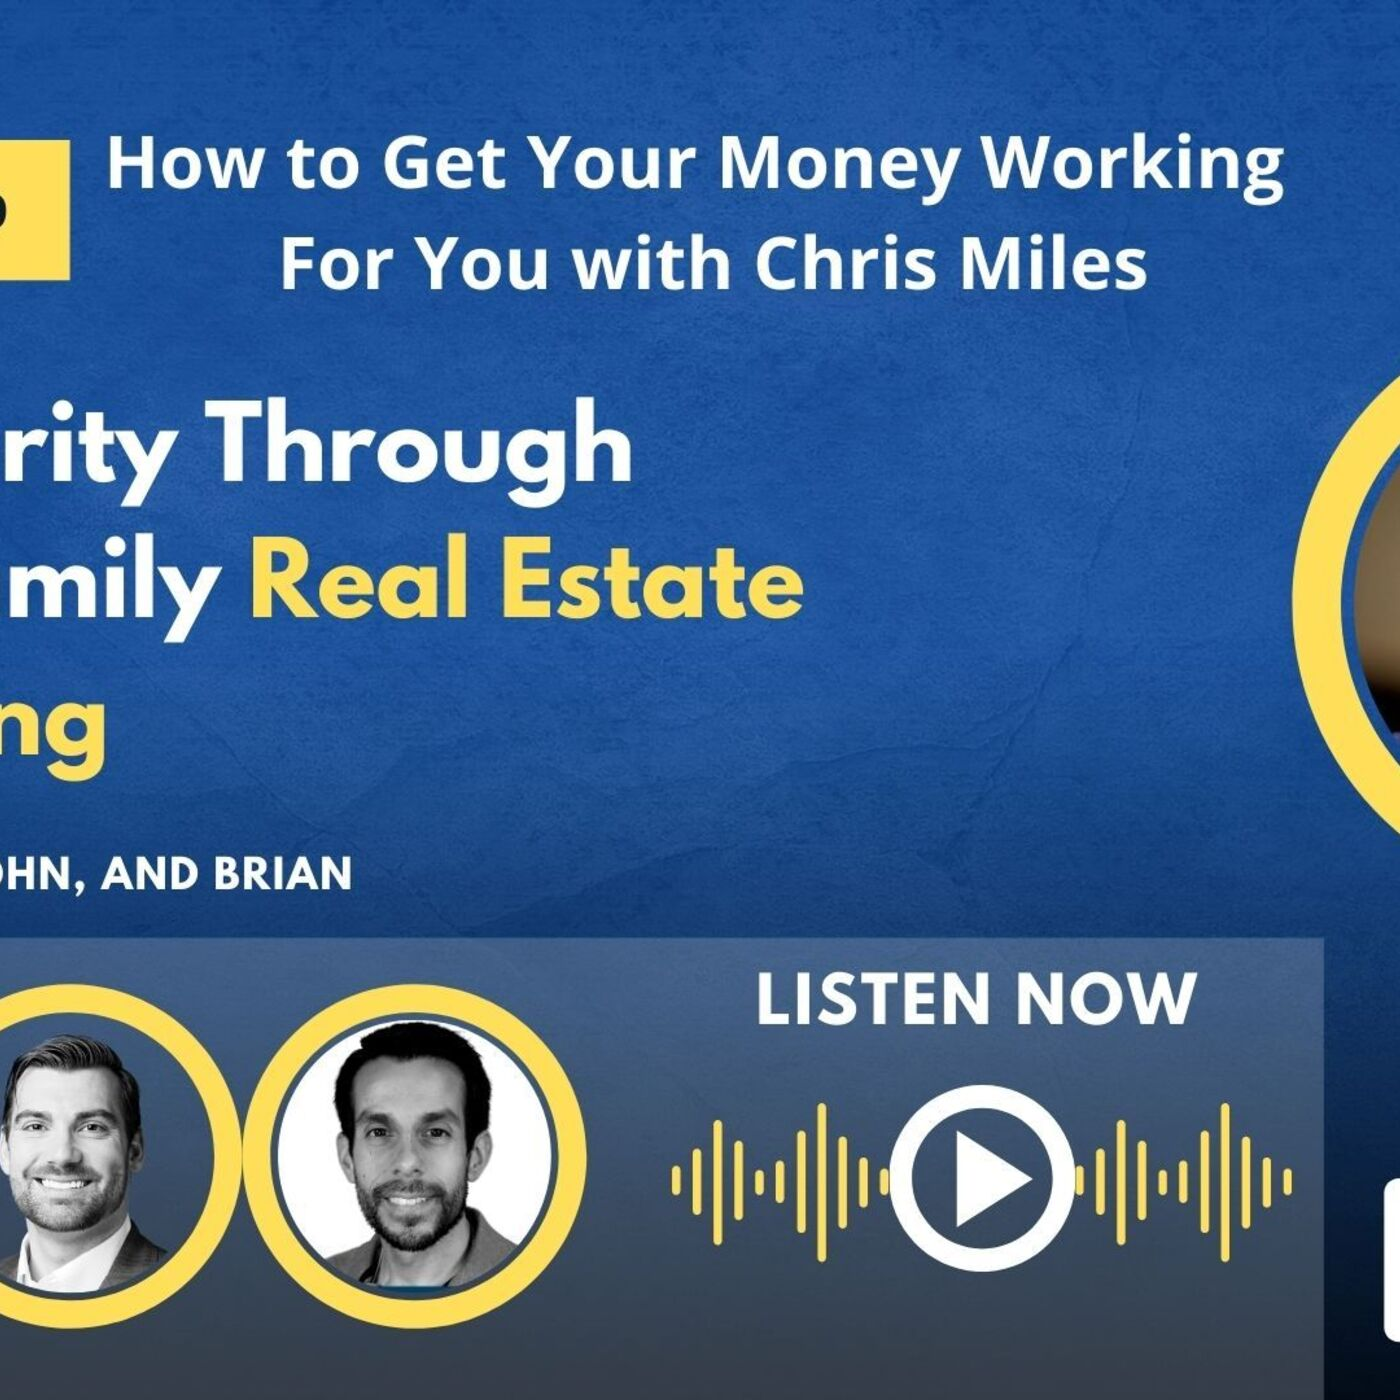 How to Get Your Money Working For You with Chris Miles